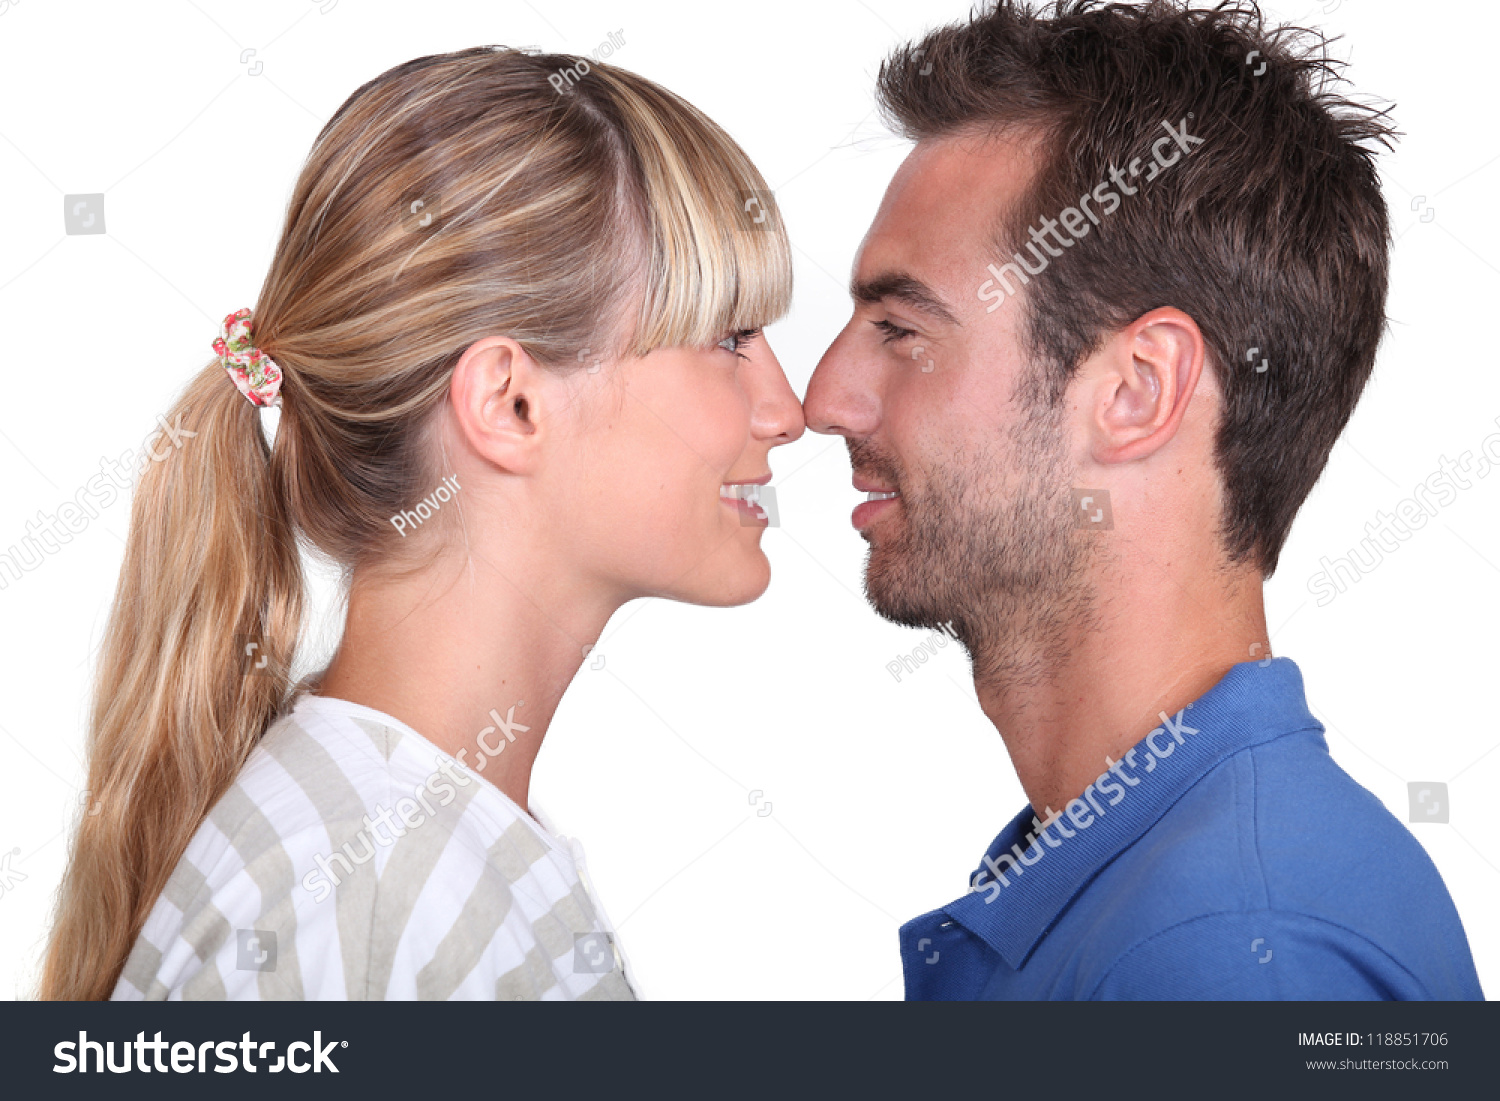 muñeco - Muñeco para calcular la estatura Stock-photo-couple-rubbing-noses-118851706